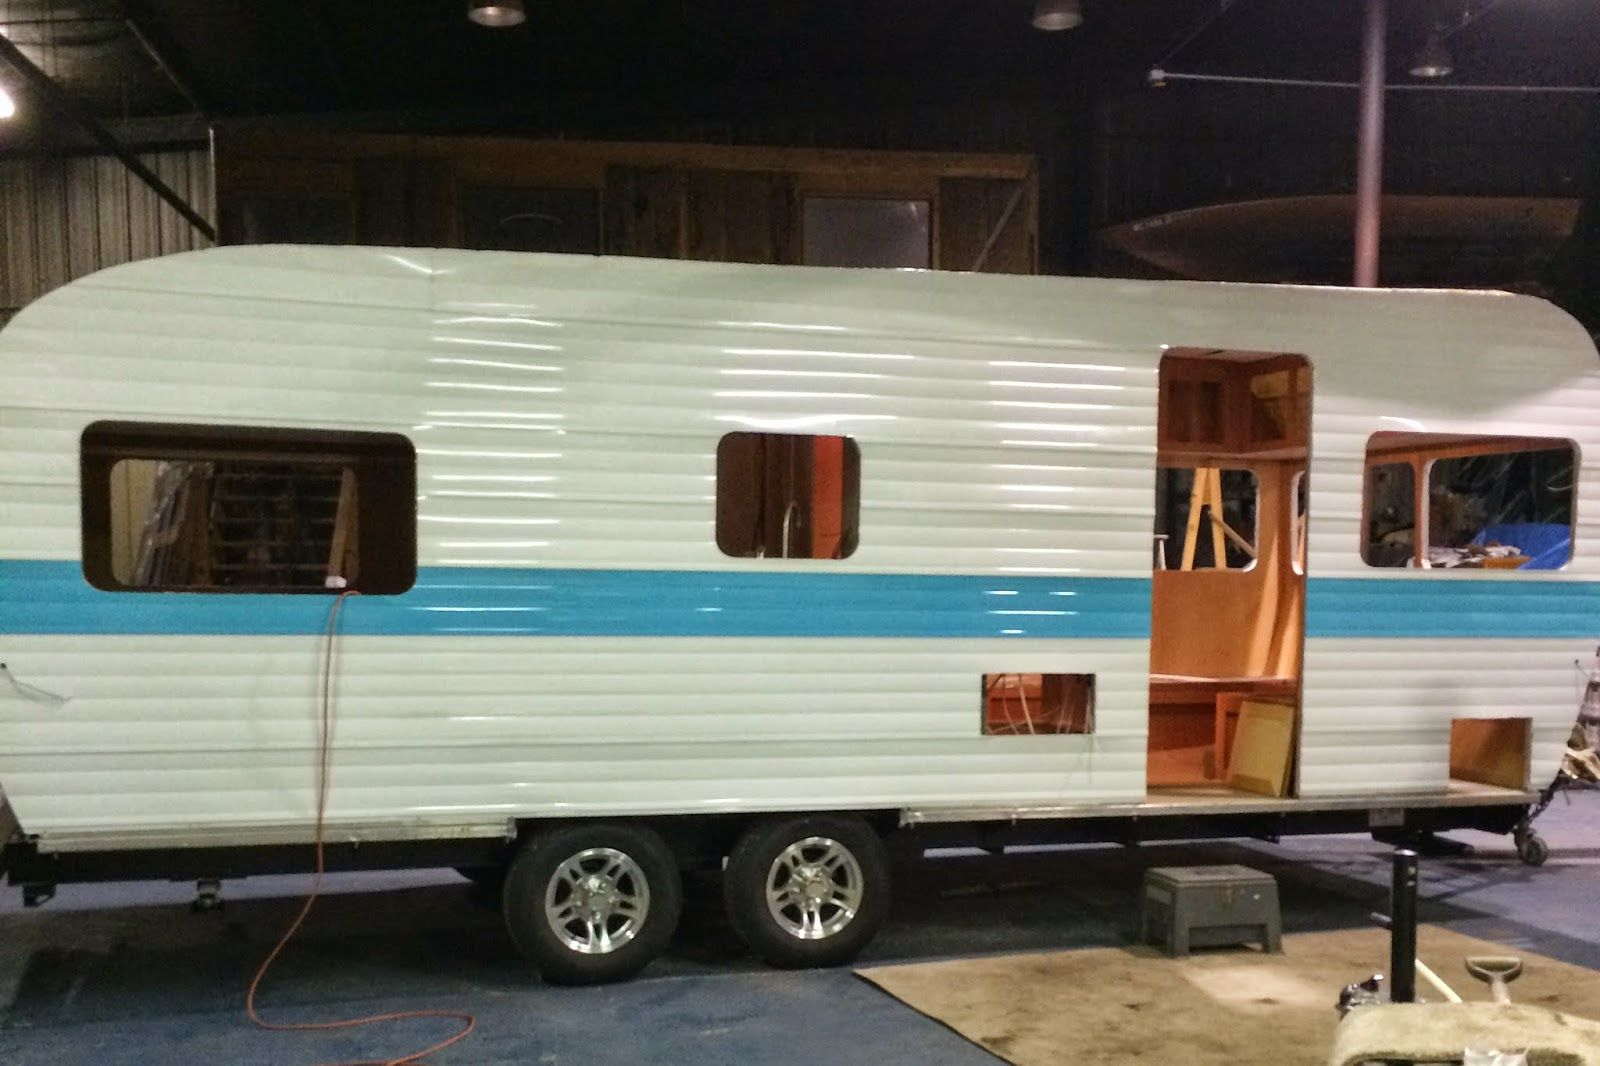 Our 24 canned ham style paradise coast rv is almost there pretty isnt she we had a custom aqua stripe done instead of the dove grey which is also